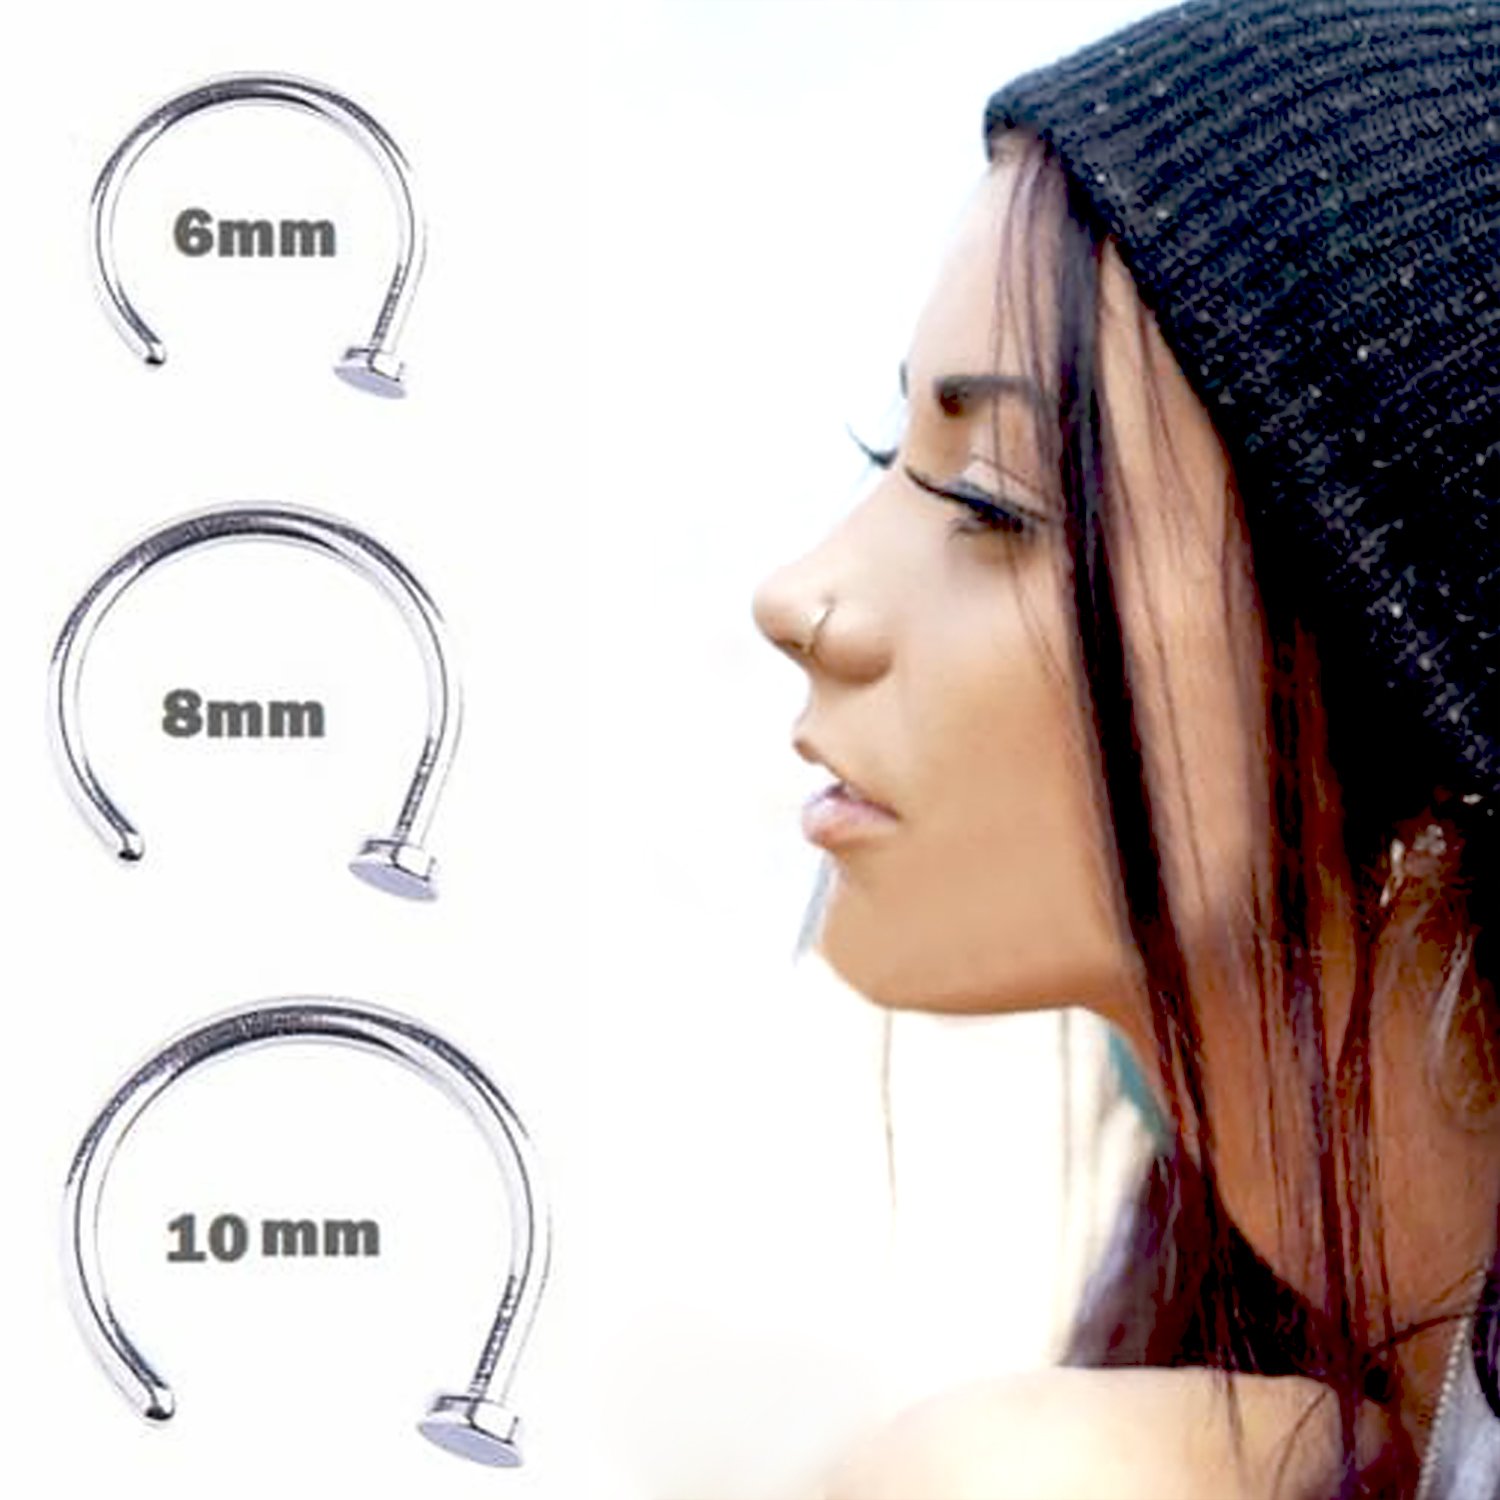 Nostril Hoop Stud Ring Clip On Piercing | Body Chain and ...